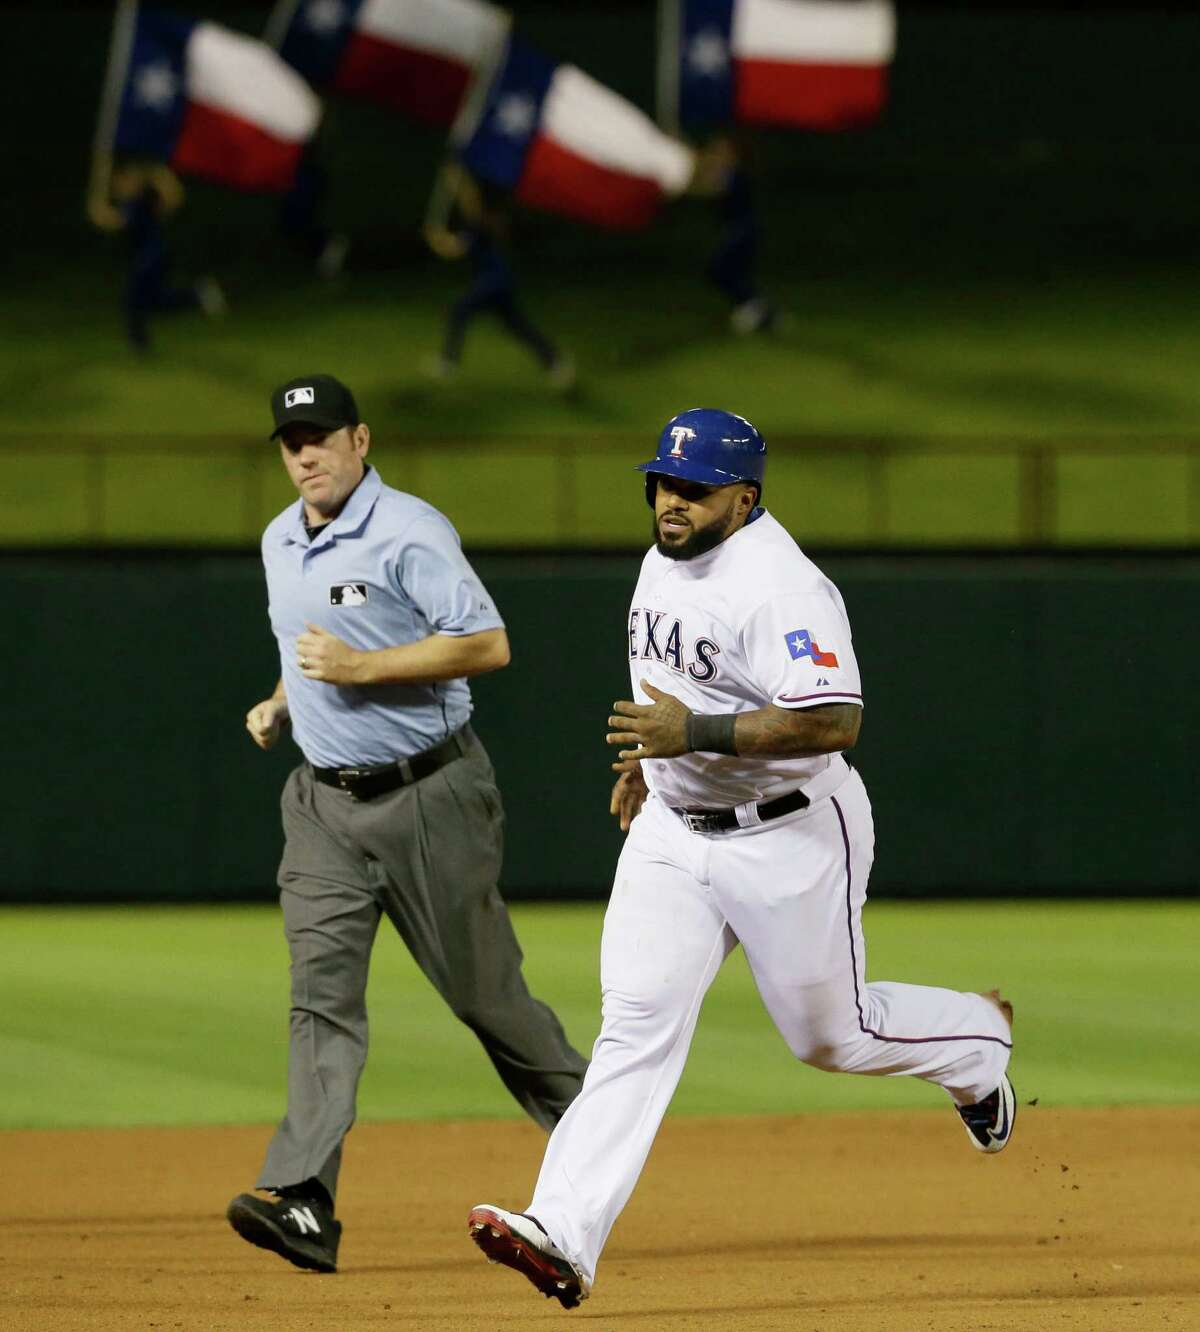 Rangers designated hitter Prince Fielder rounds the bases after hitting a solo home run during the eighth inning. Fielder, who missed almost all of last season after neck surgery, hit his third homer of the season.